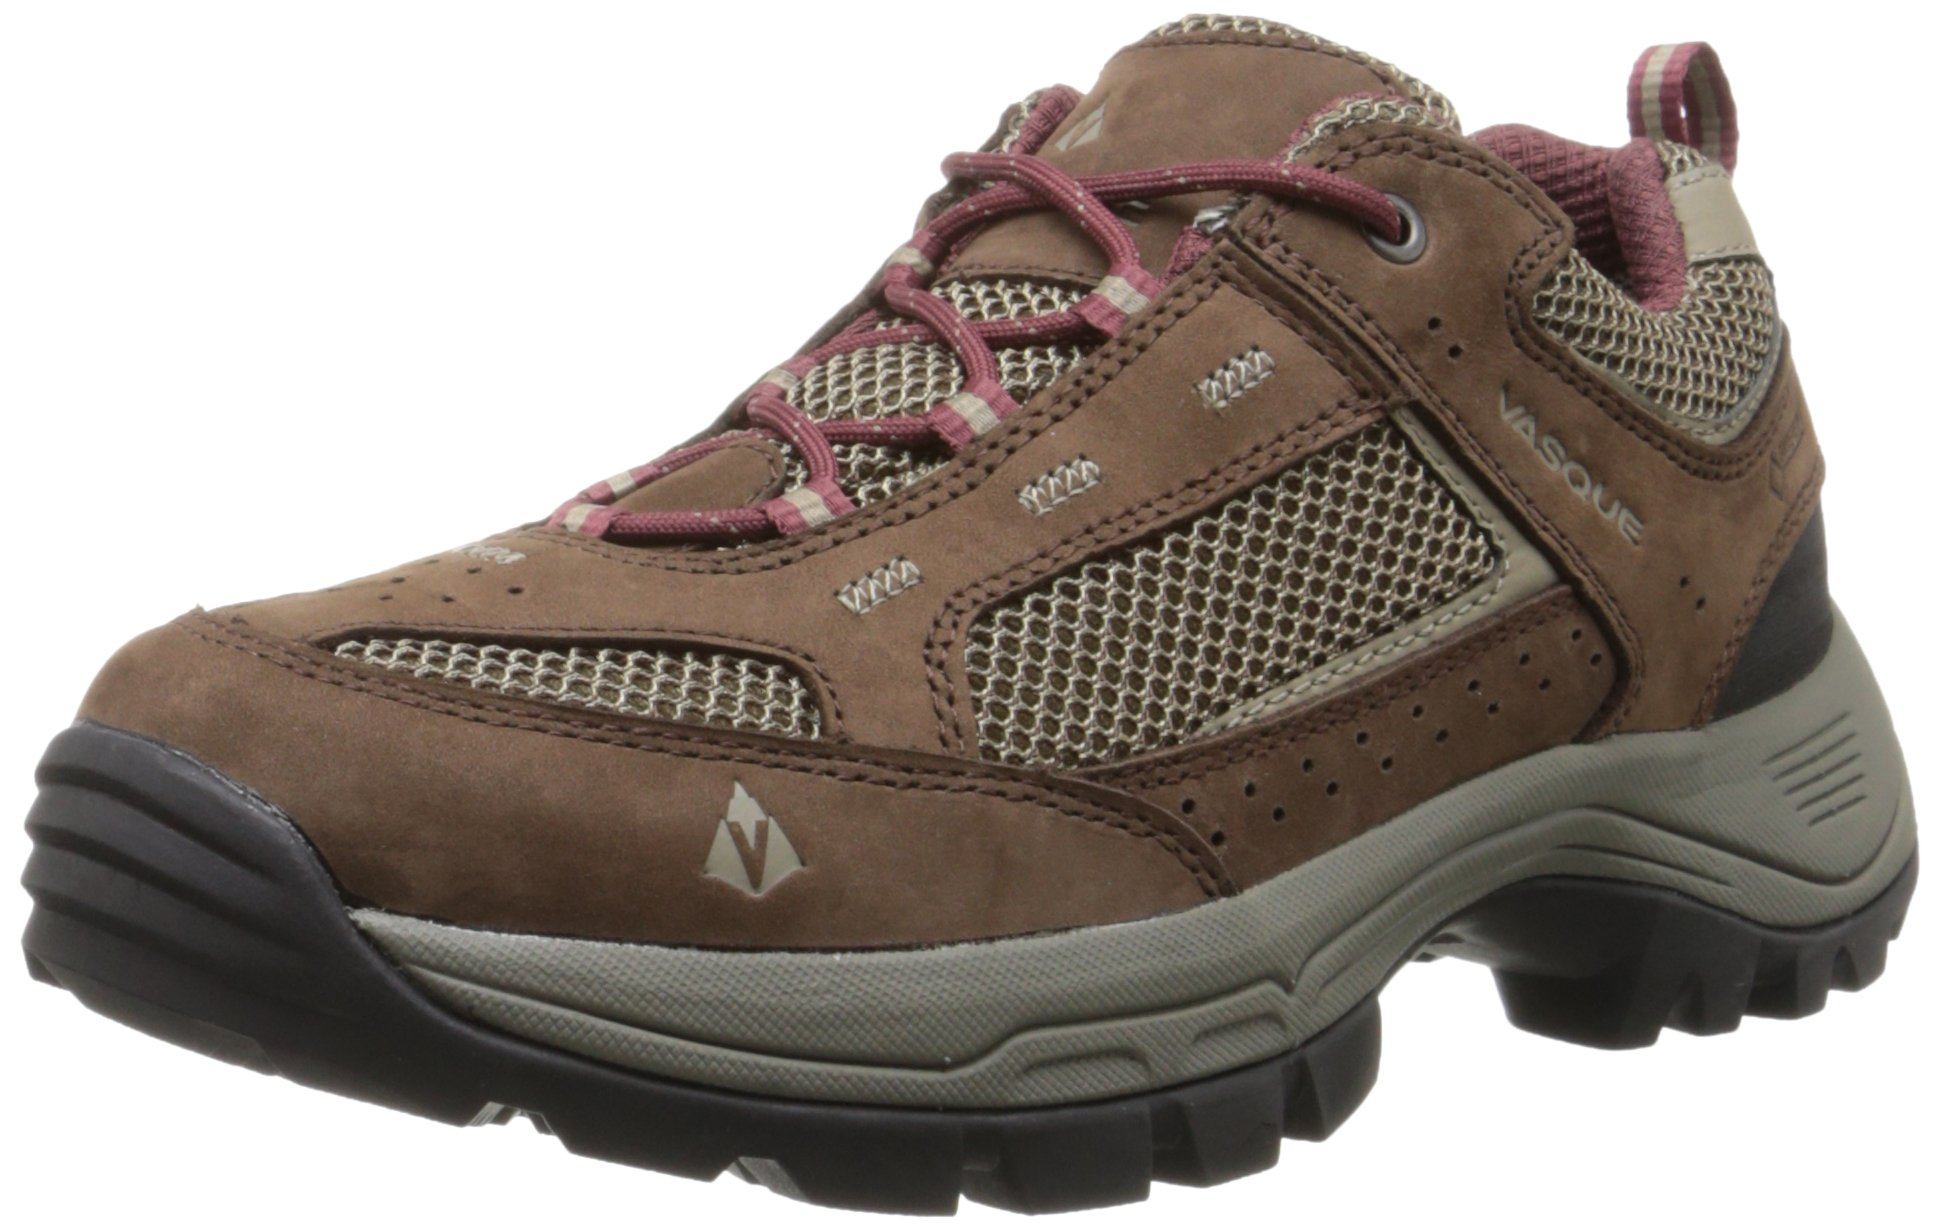 Vasque Women's Breeze 2.0 Low Gore-Tex Hiking Shoe, Slate Brown/Red Mahogany,8.5 W US